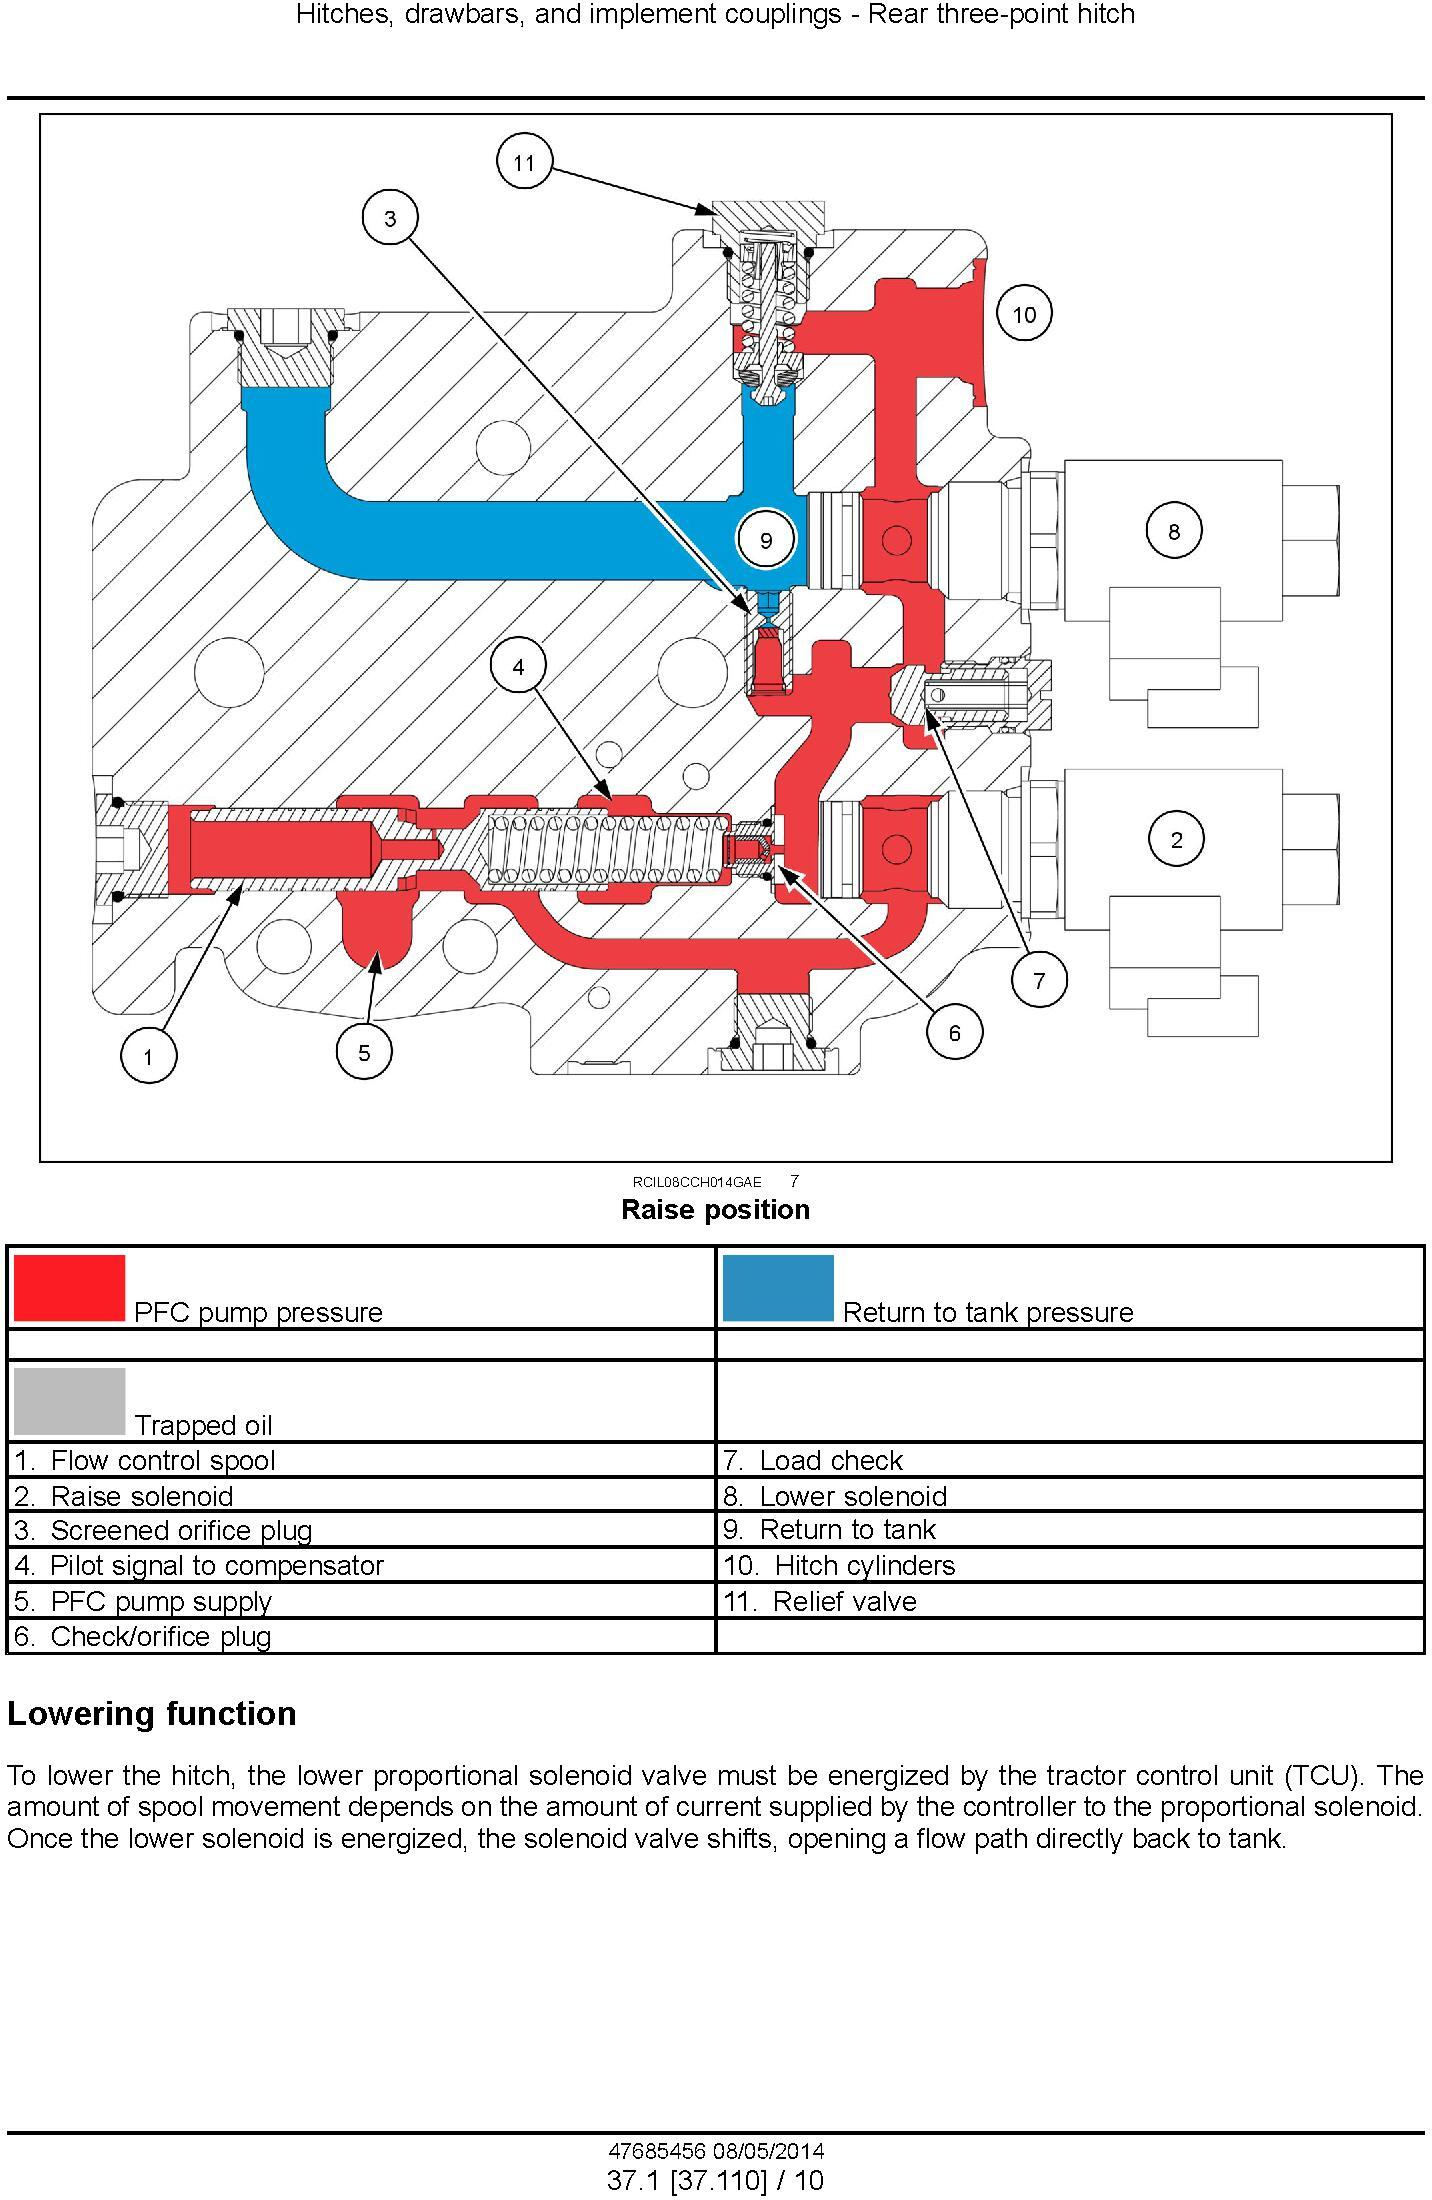 New Holland T8.320, T8.350, T8.380, T8.410, T8.435 Tractor w.PS Transmission Service Manual (USA) - 2